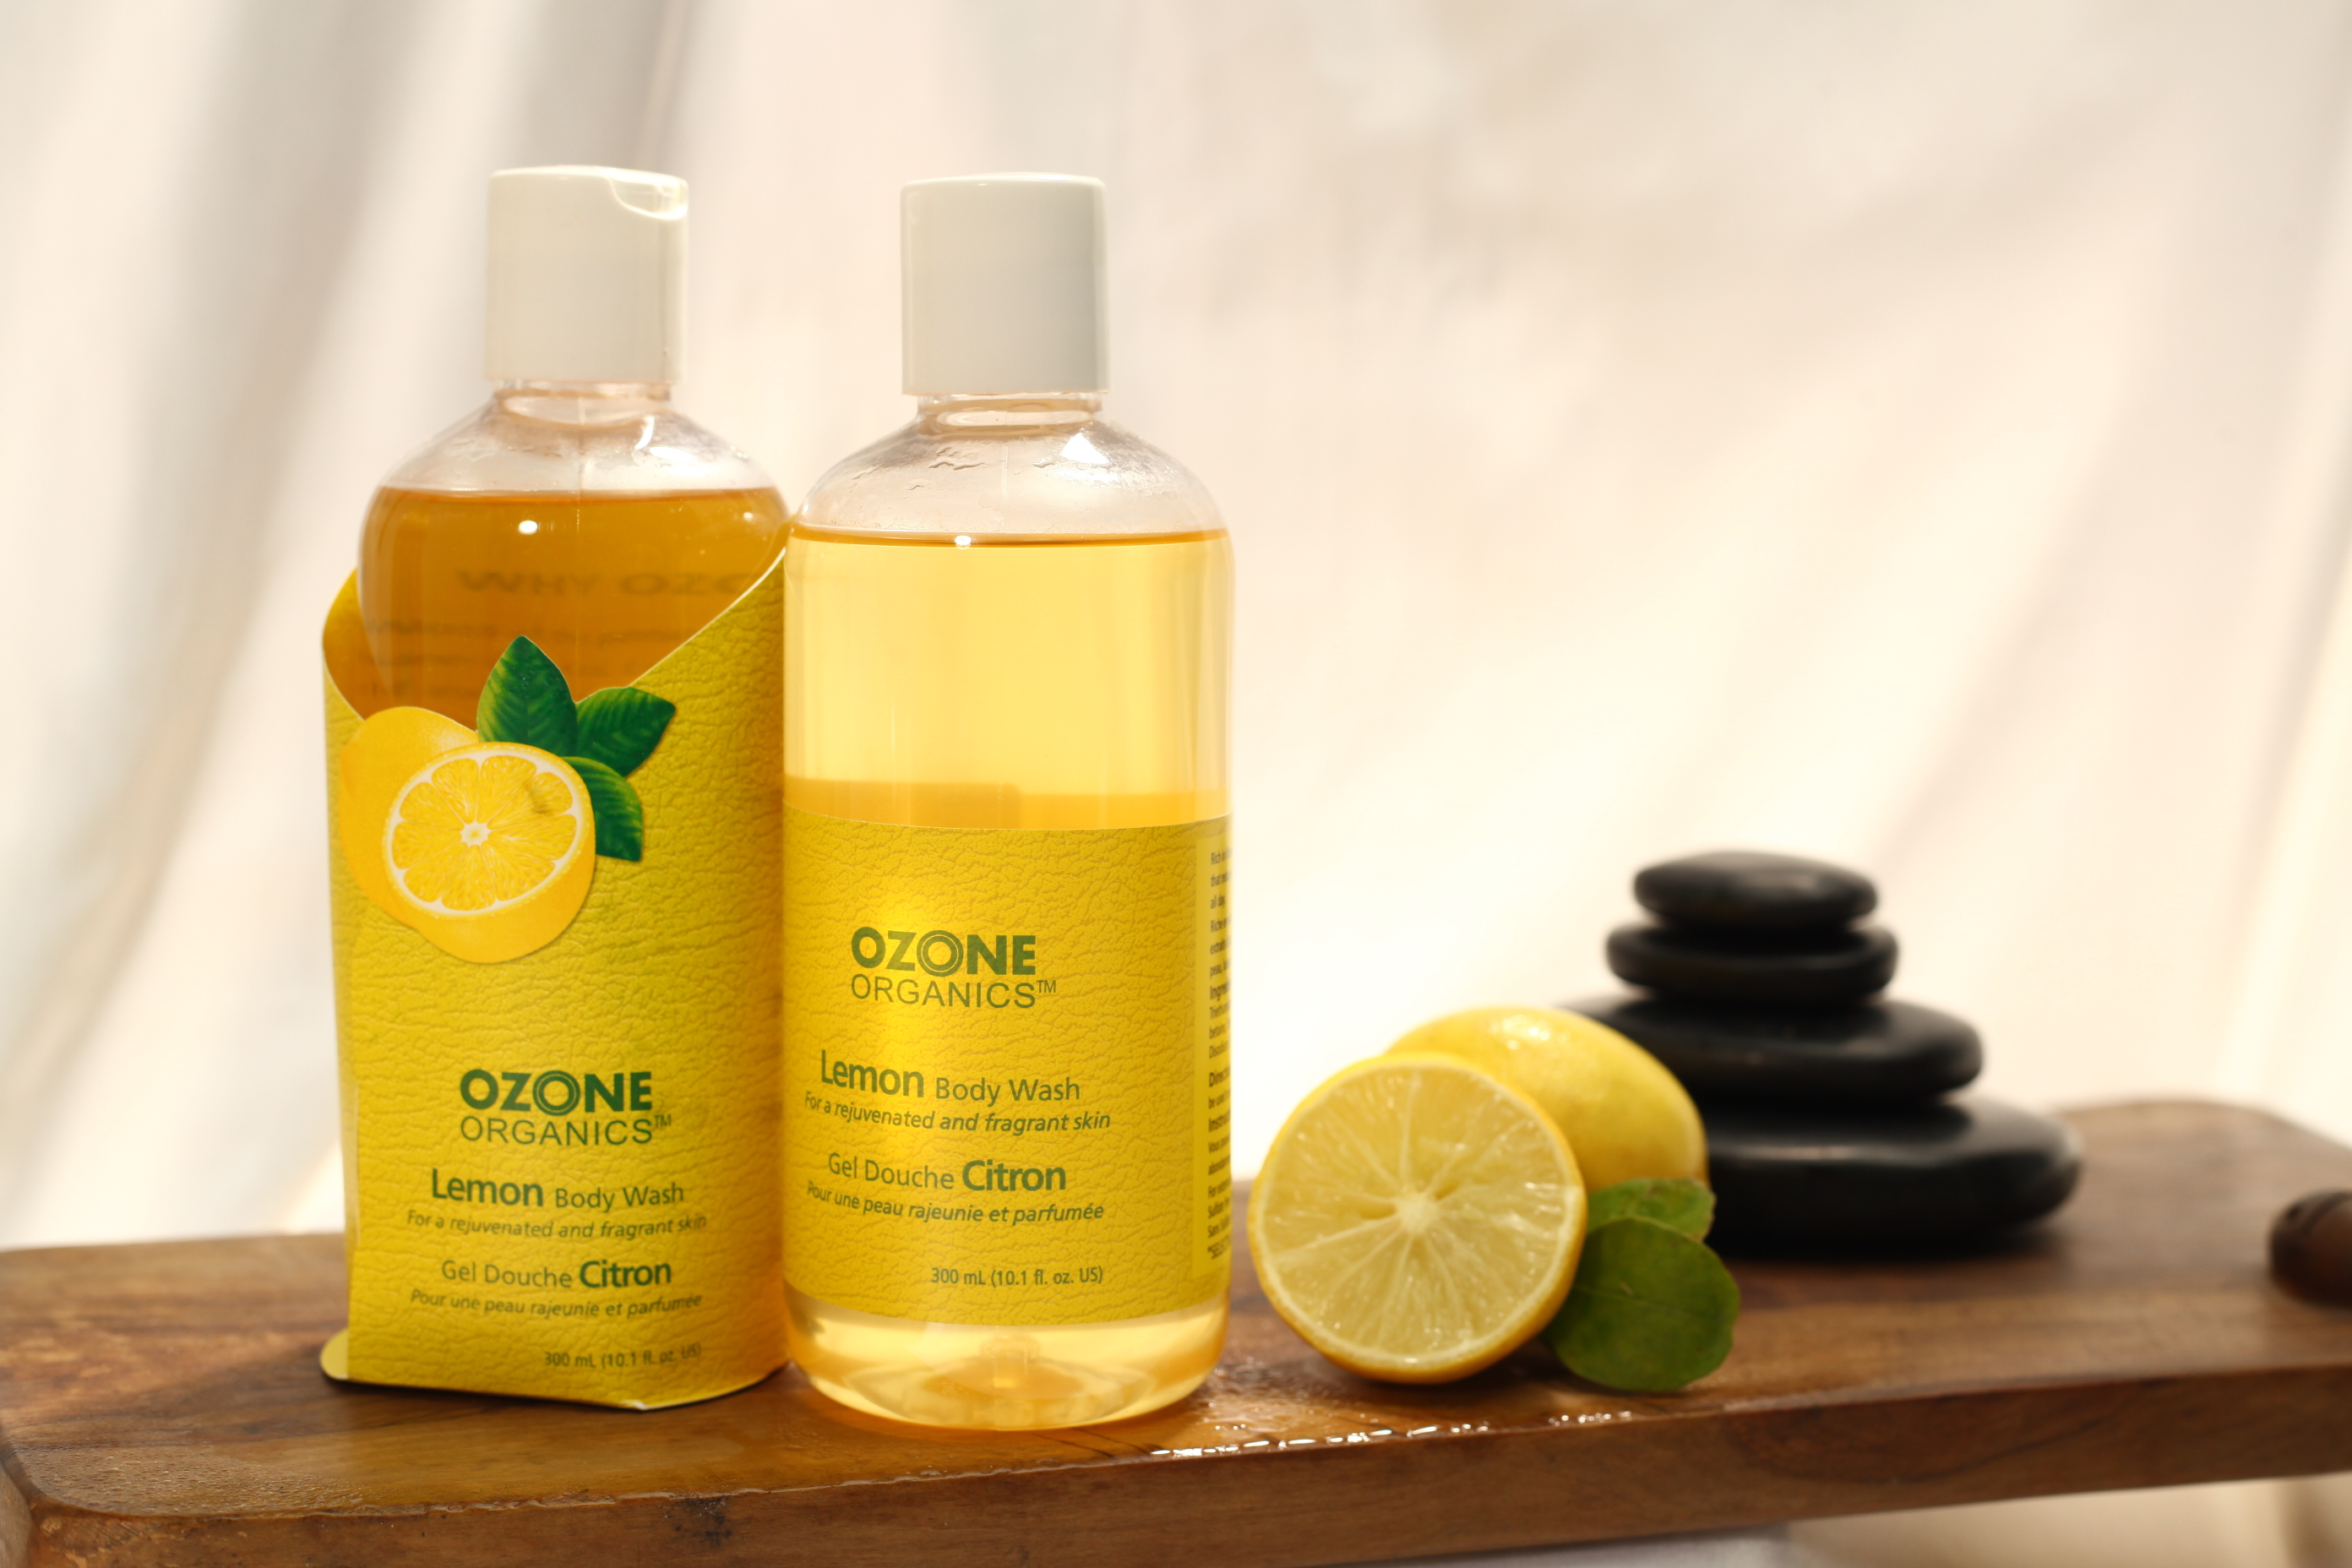 Use organic Lemon Body Wash